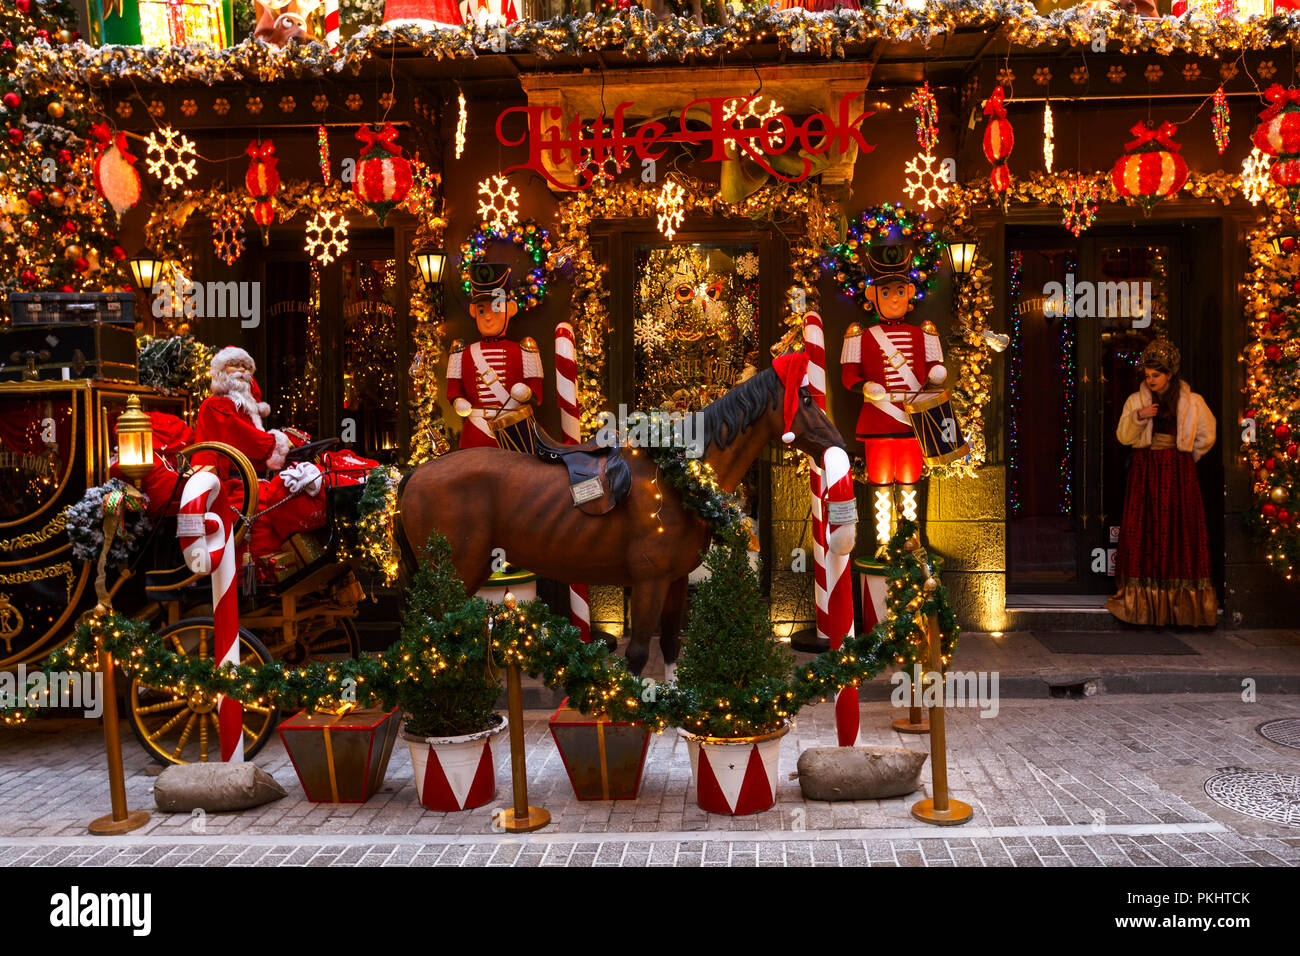 Athens, Greece - January 9, 2018: Little Kook, a famous patisserie with Christmas decoration in Psirri neighbourhood in central Athens. - Stock Image